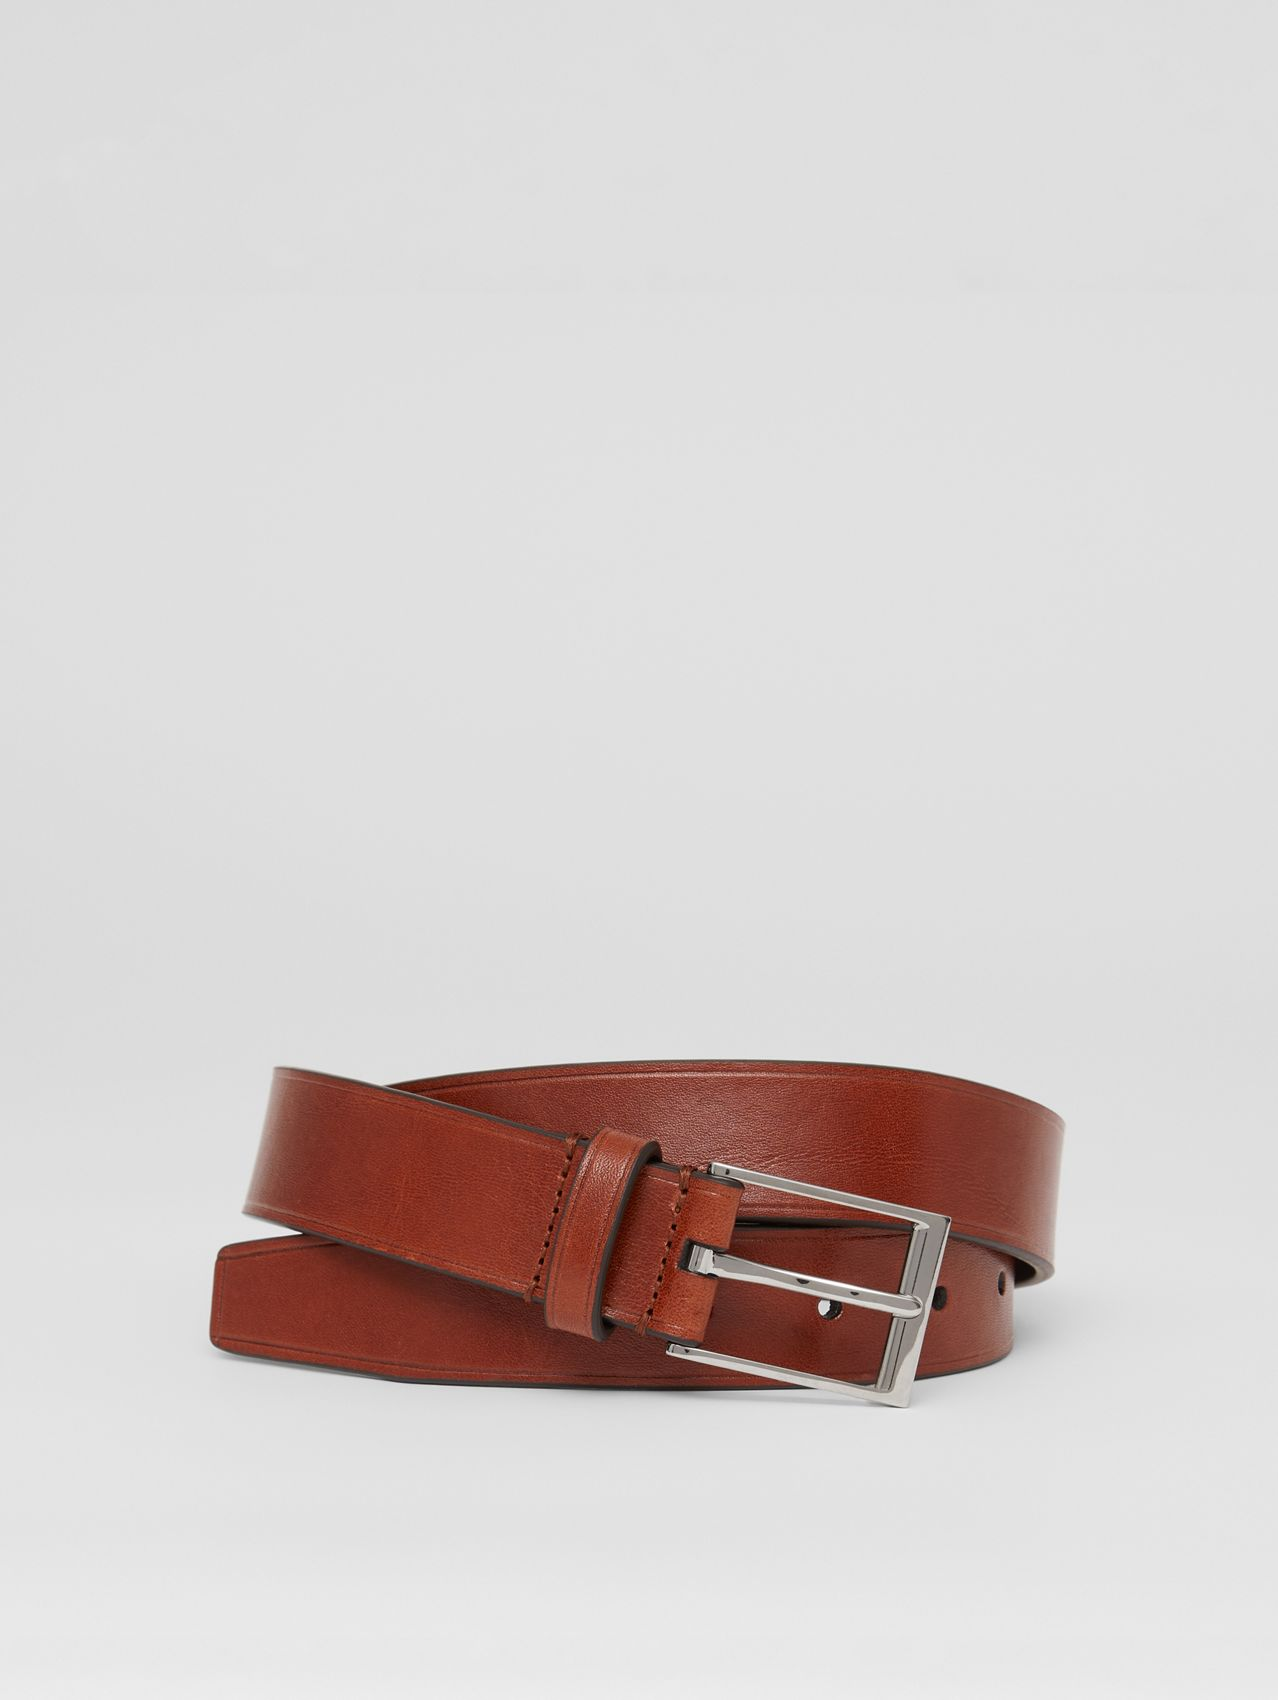 Two-tone Leather Belt in Dark Russet Brown